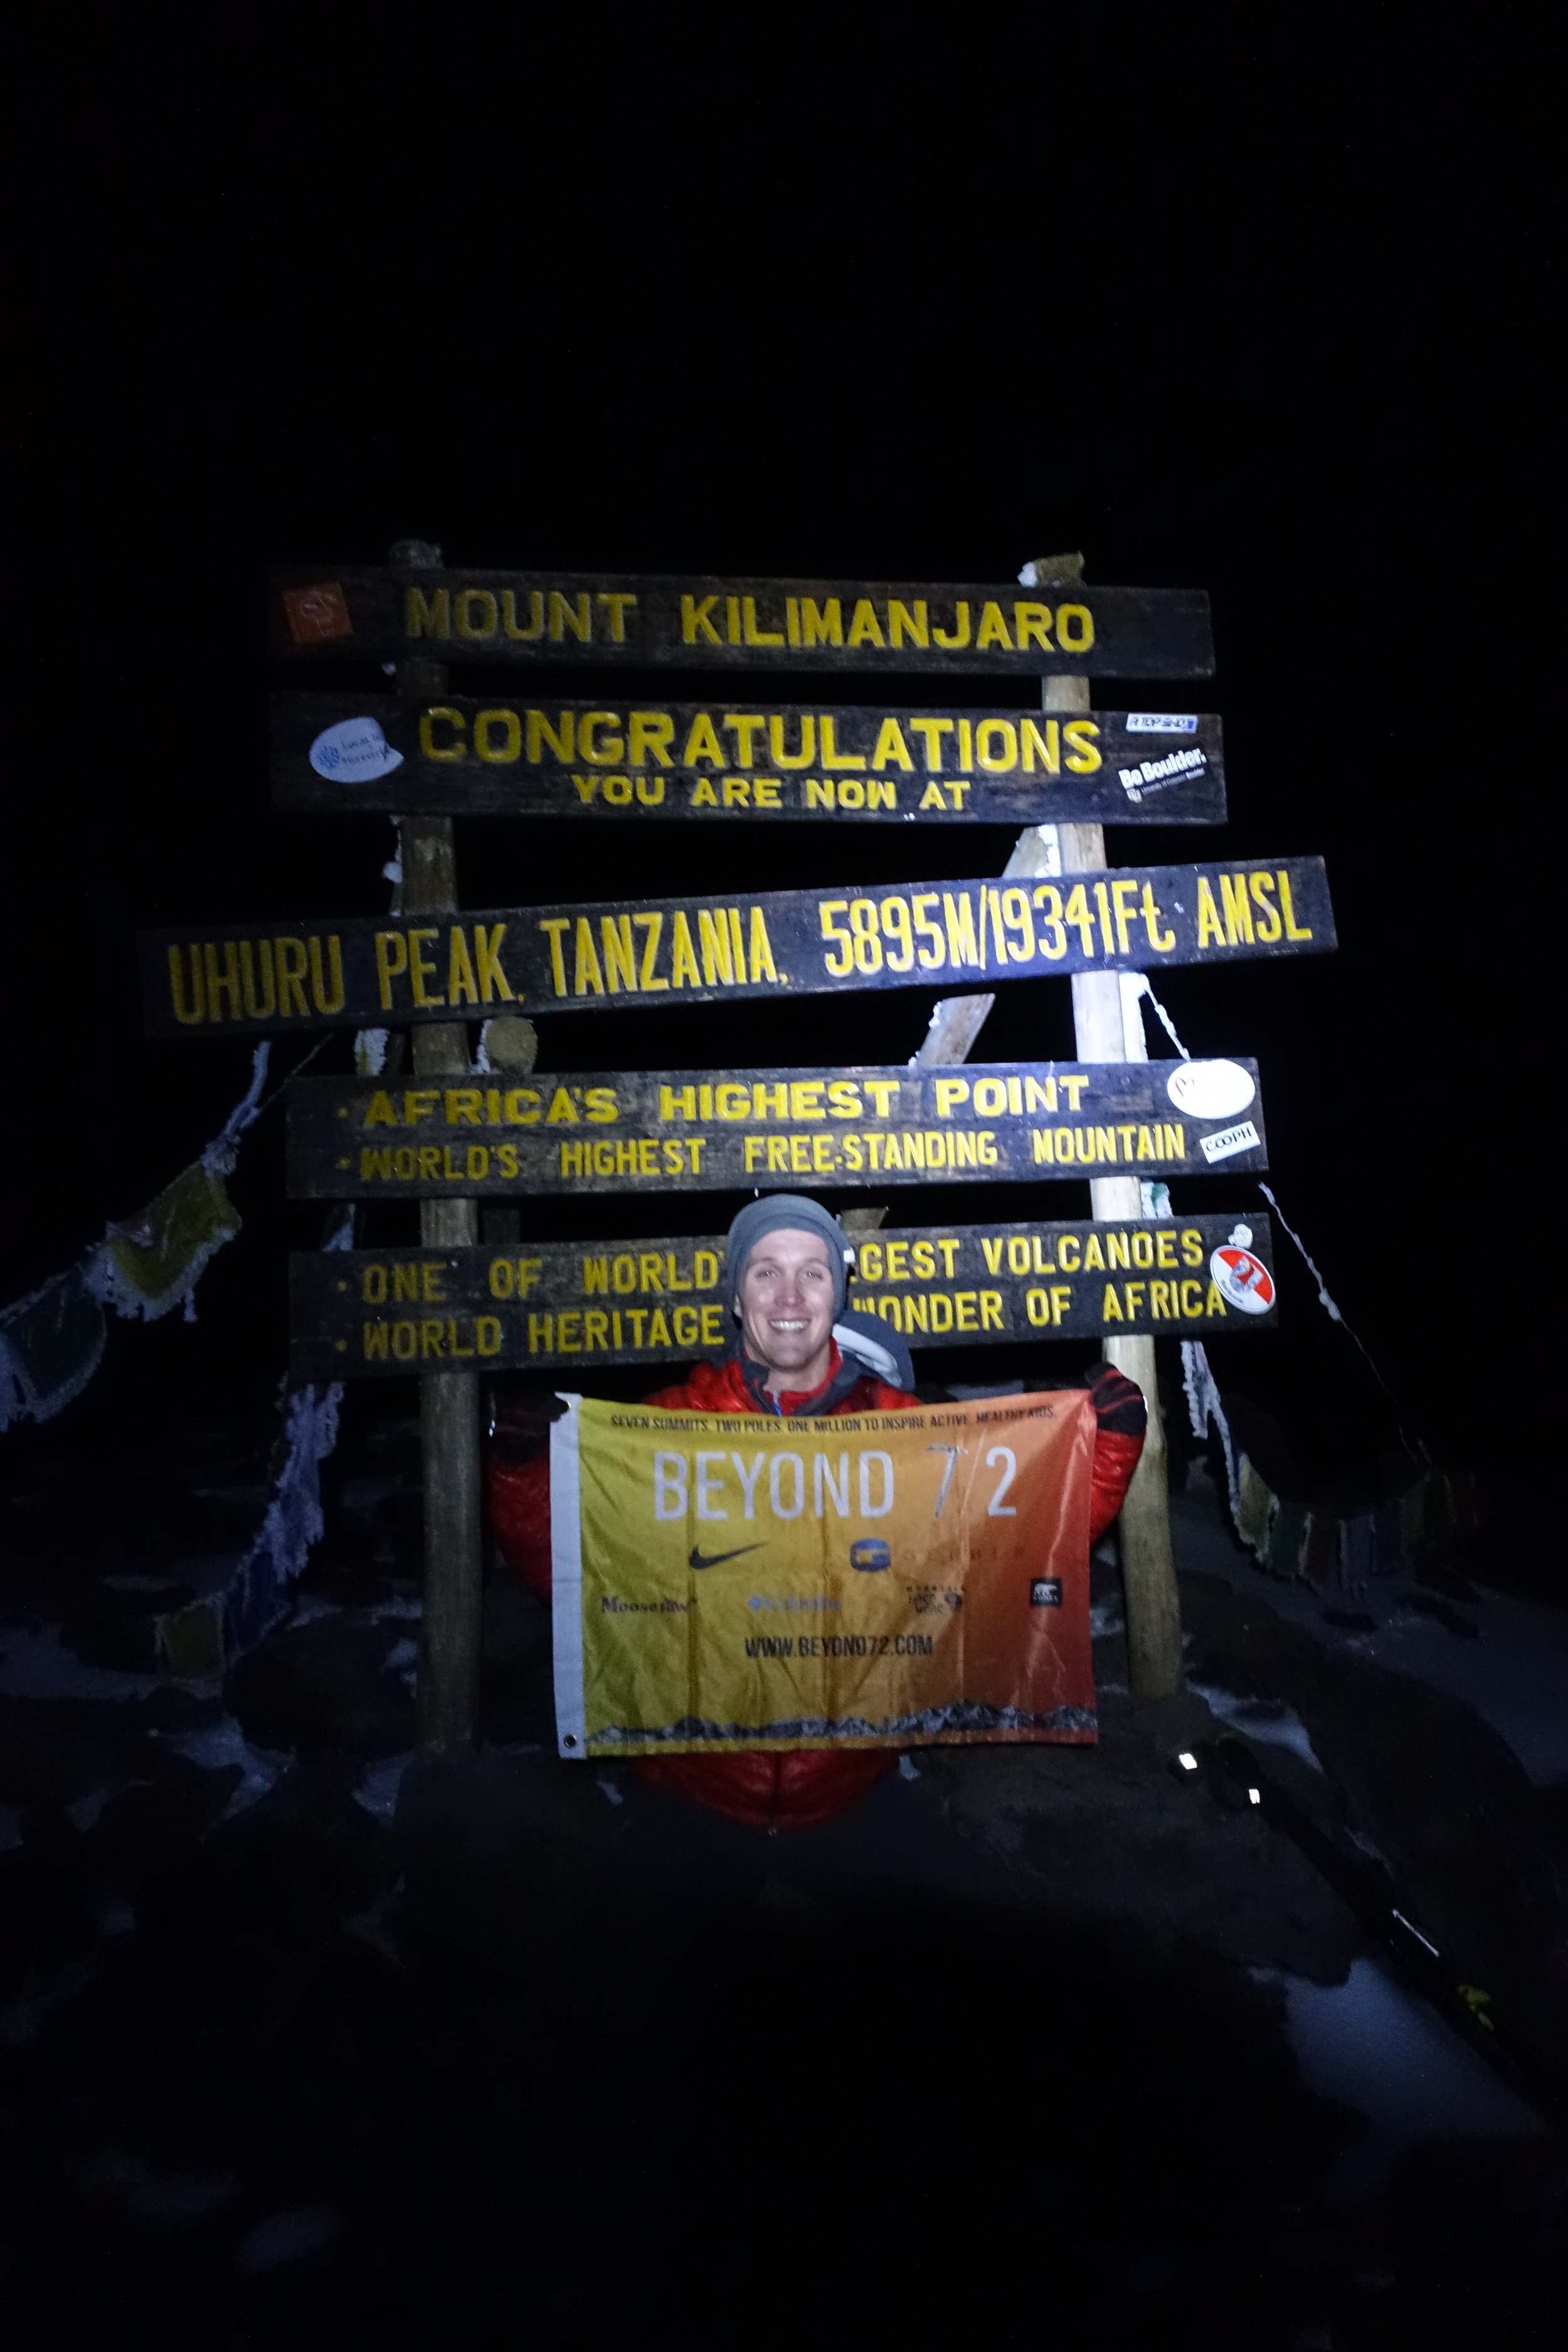 Summit shot in the dark after 11 hours of climbing from the base of Mt. Kilimanjaro.